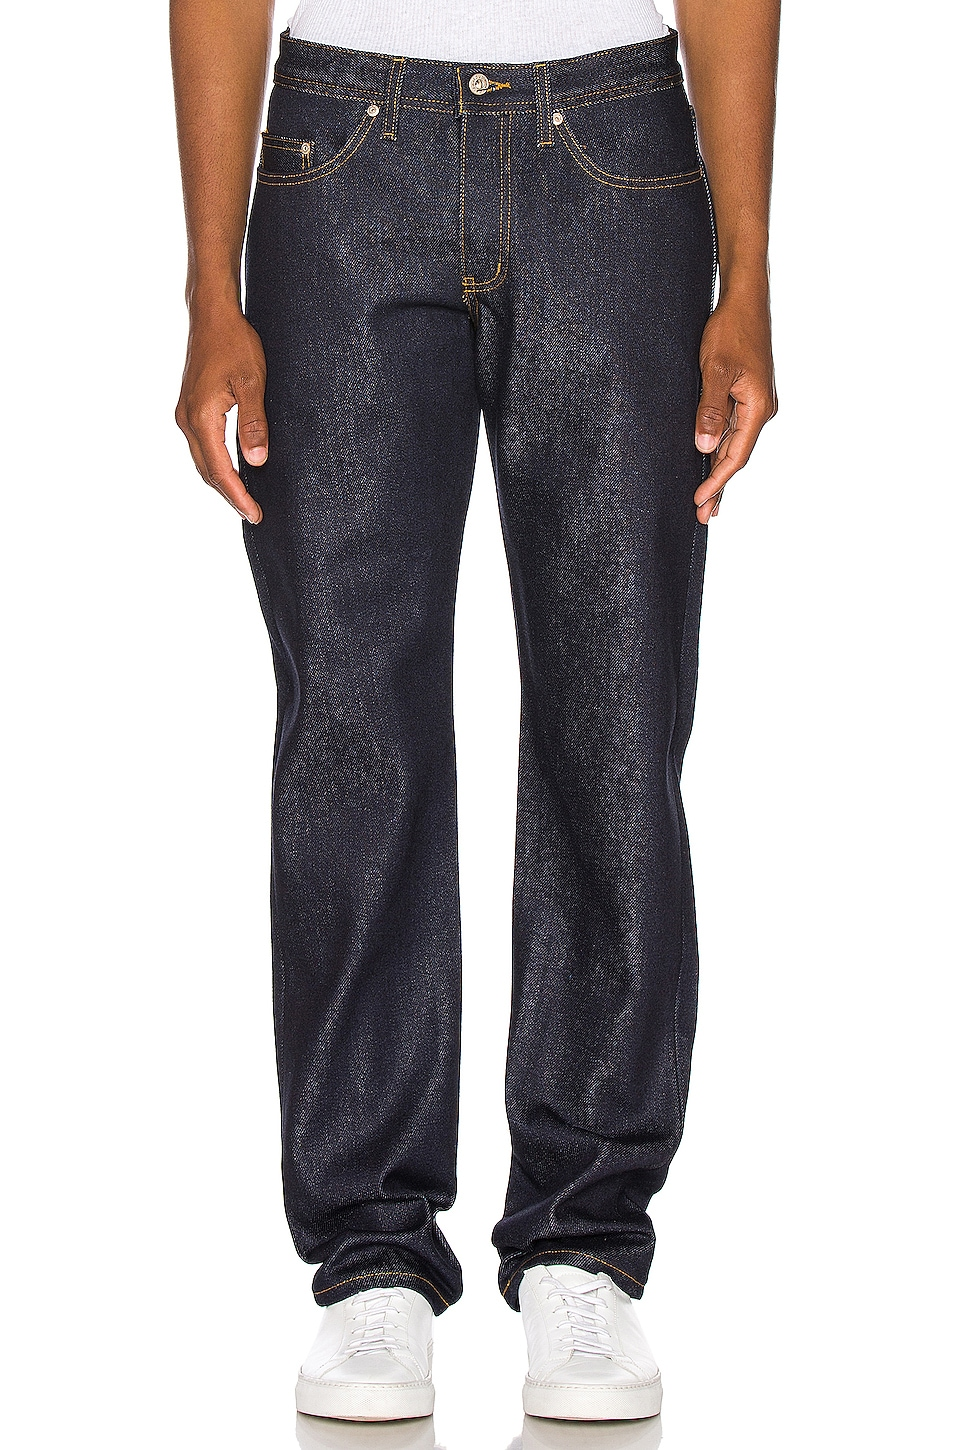 Naked & Famous Denim Weird Guy Jeans in Elephant 8 Supima Soft Selvedge